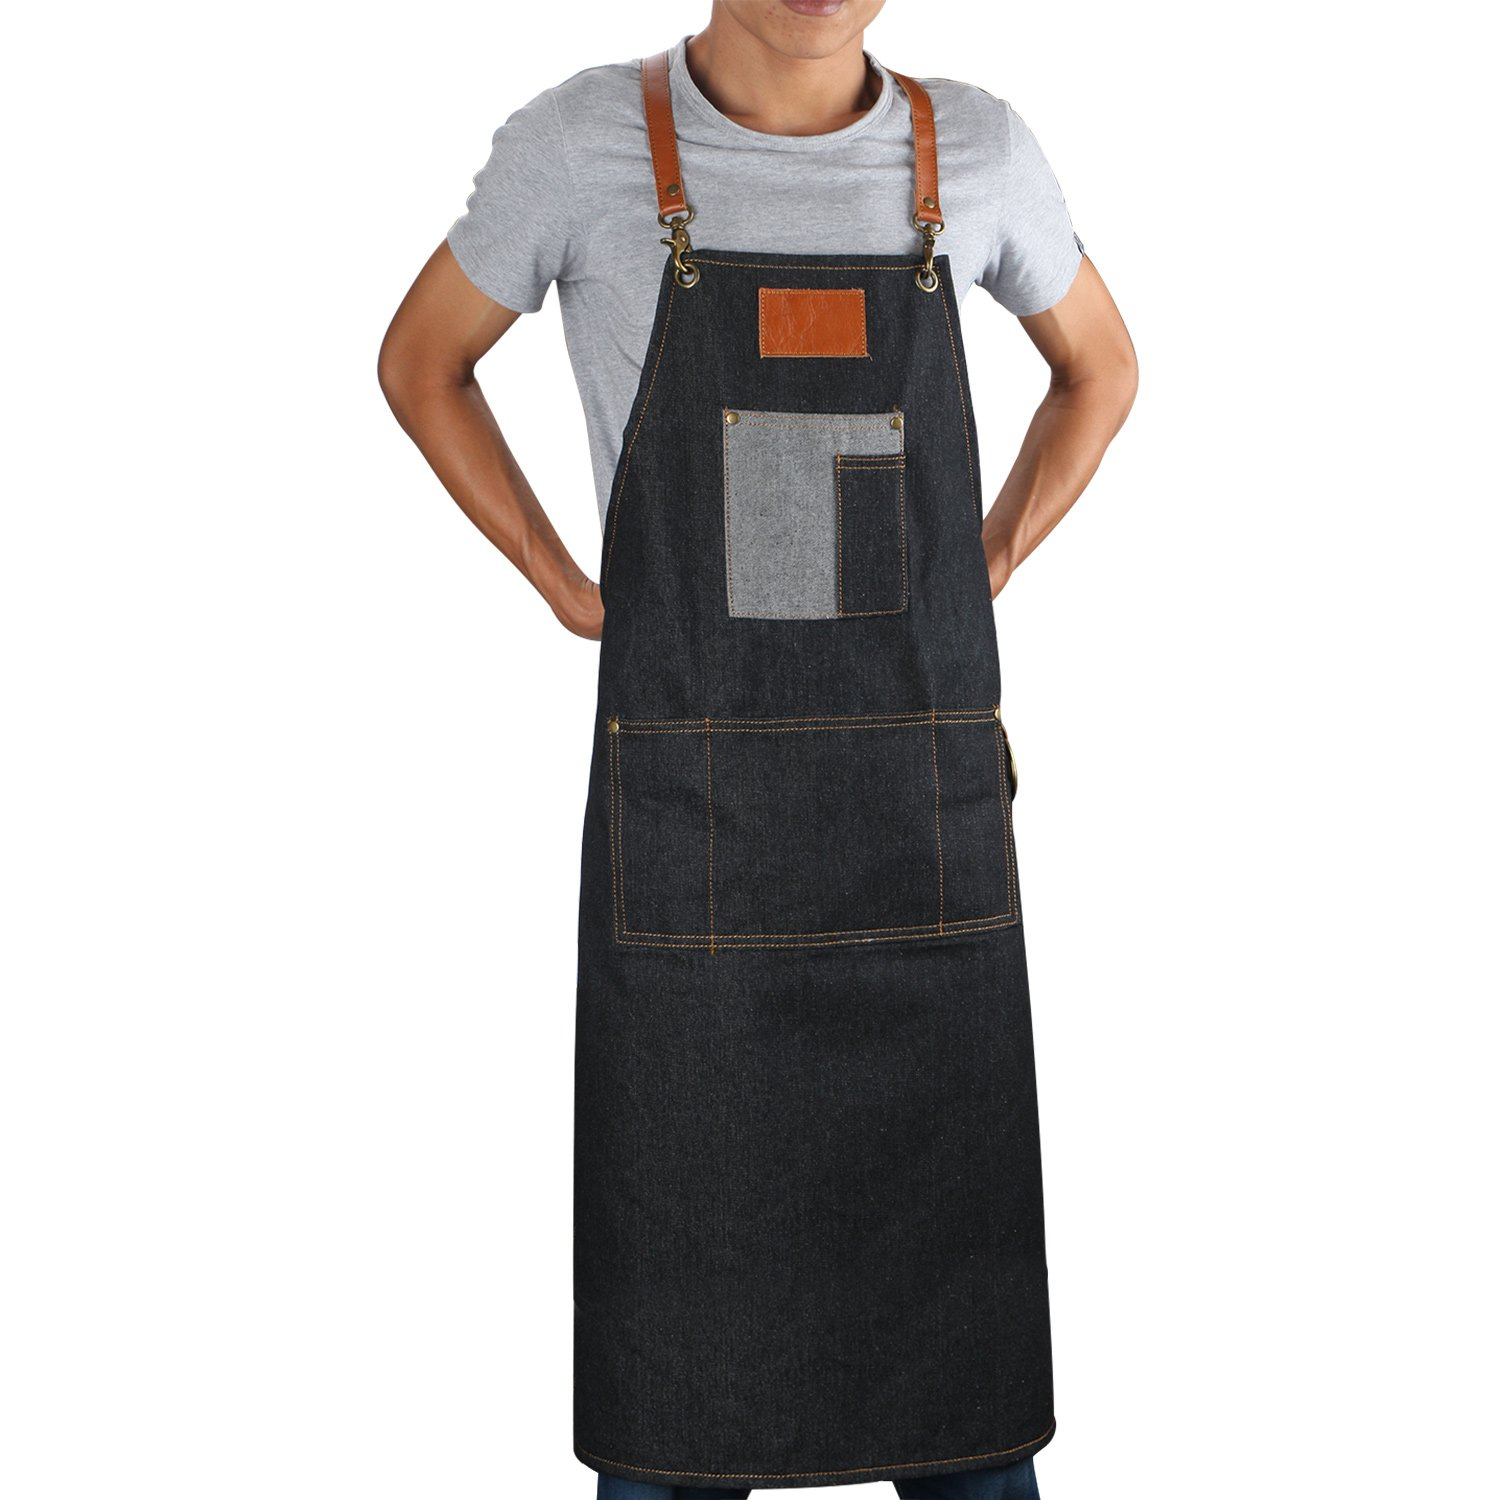 Craftsman Work Apron Extra Long for Men, 39.21'' Plus Jean Denim Apron with 5 Pockets, Adjustable Waist Straps Barber Apron Vendor Aprons, Professional Shop Apron for Server Seg-Beauty